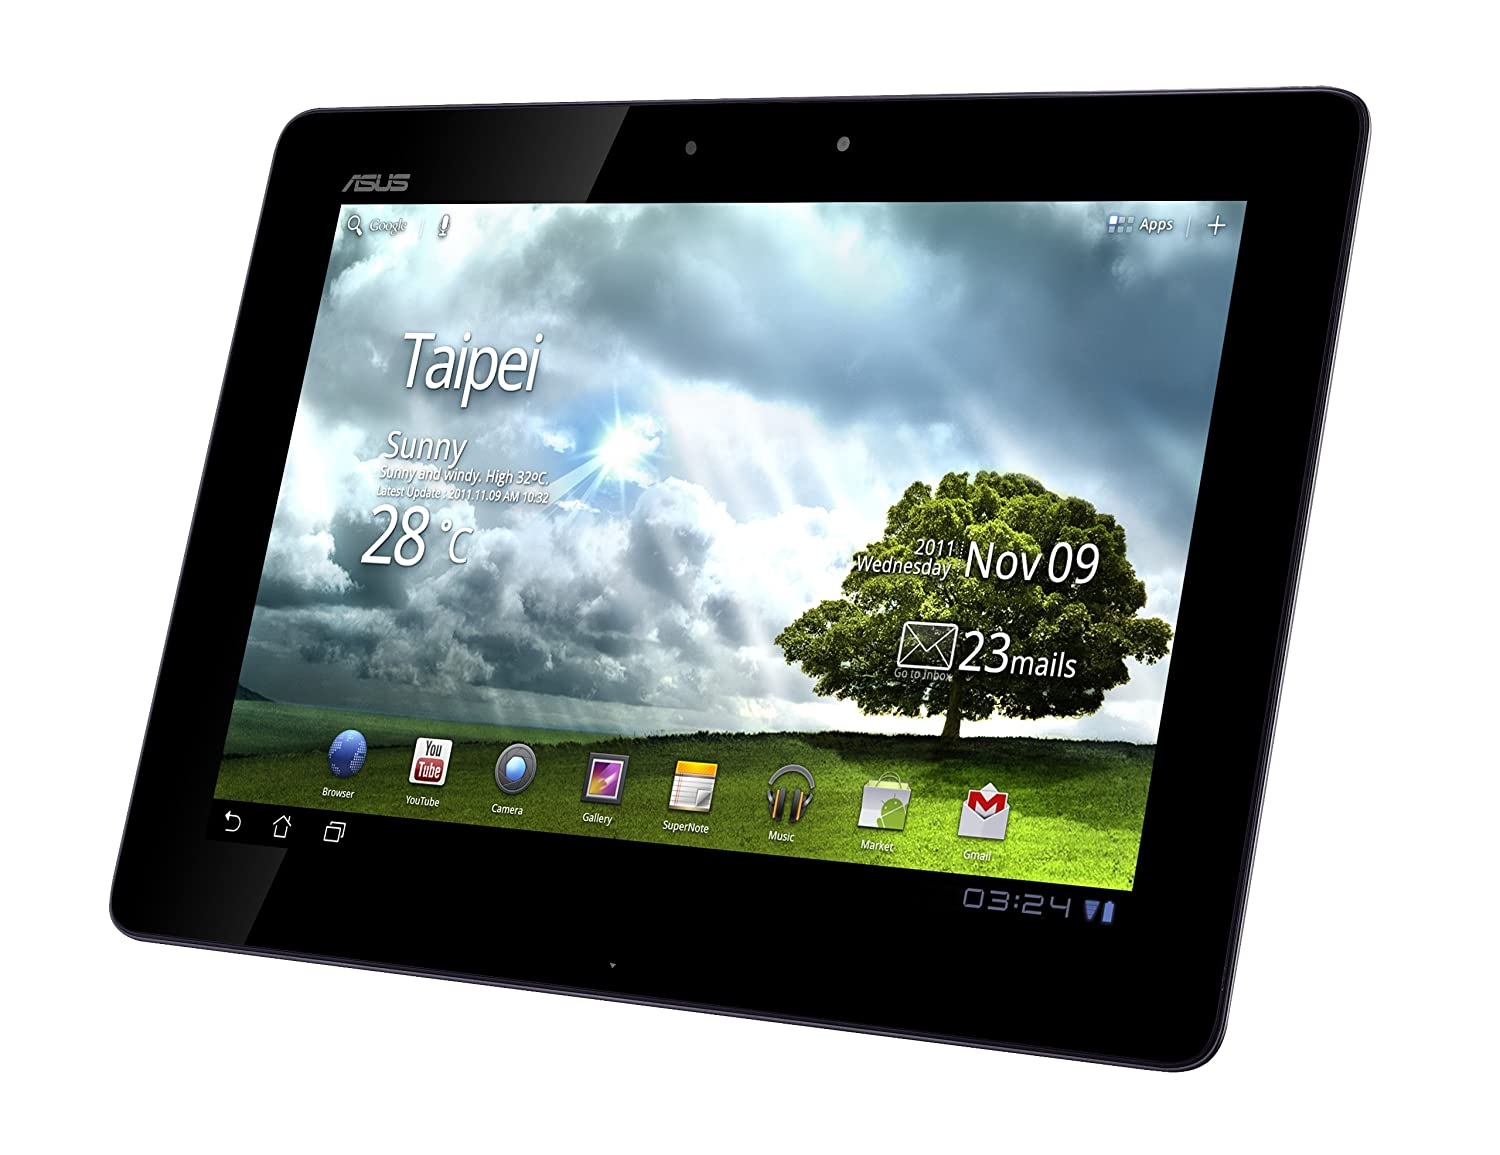 Asus Eee Pad Transformer Prime TF201 Driver for Windows Download